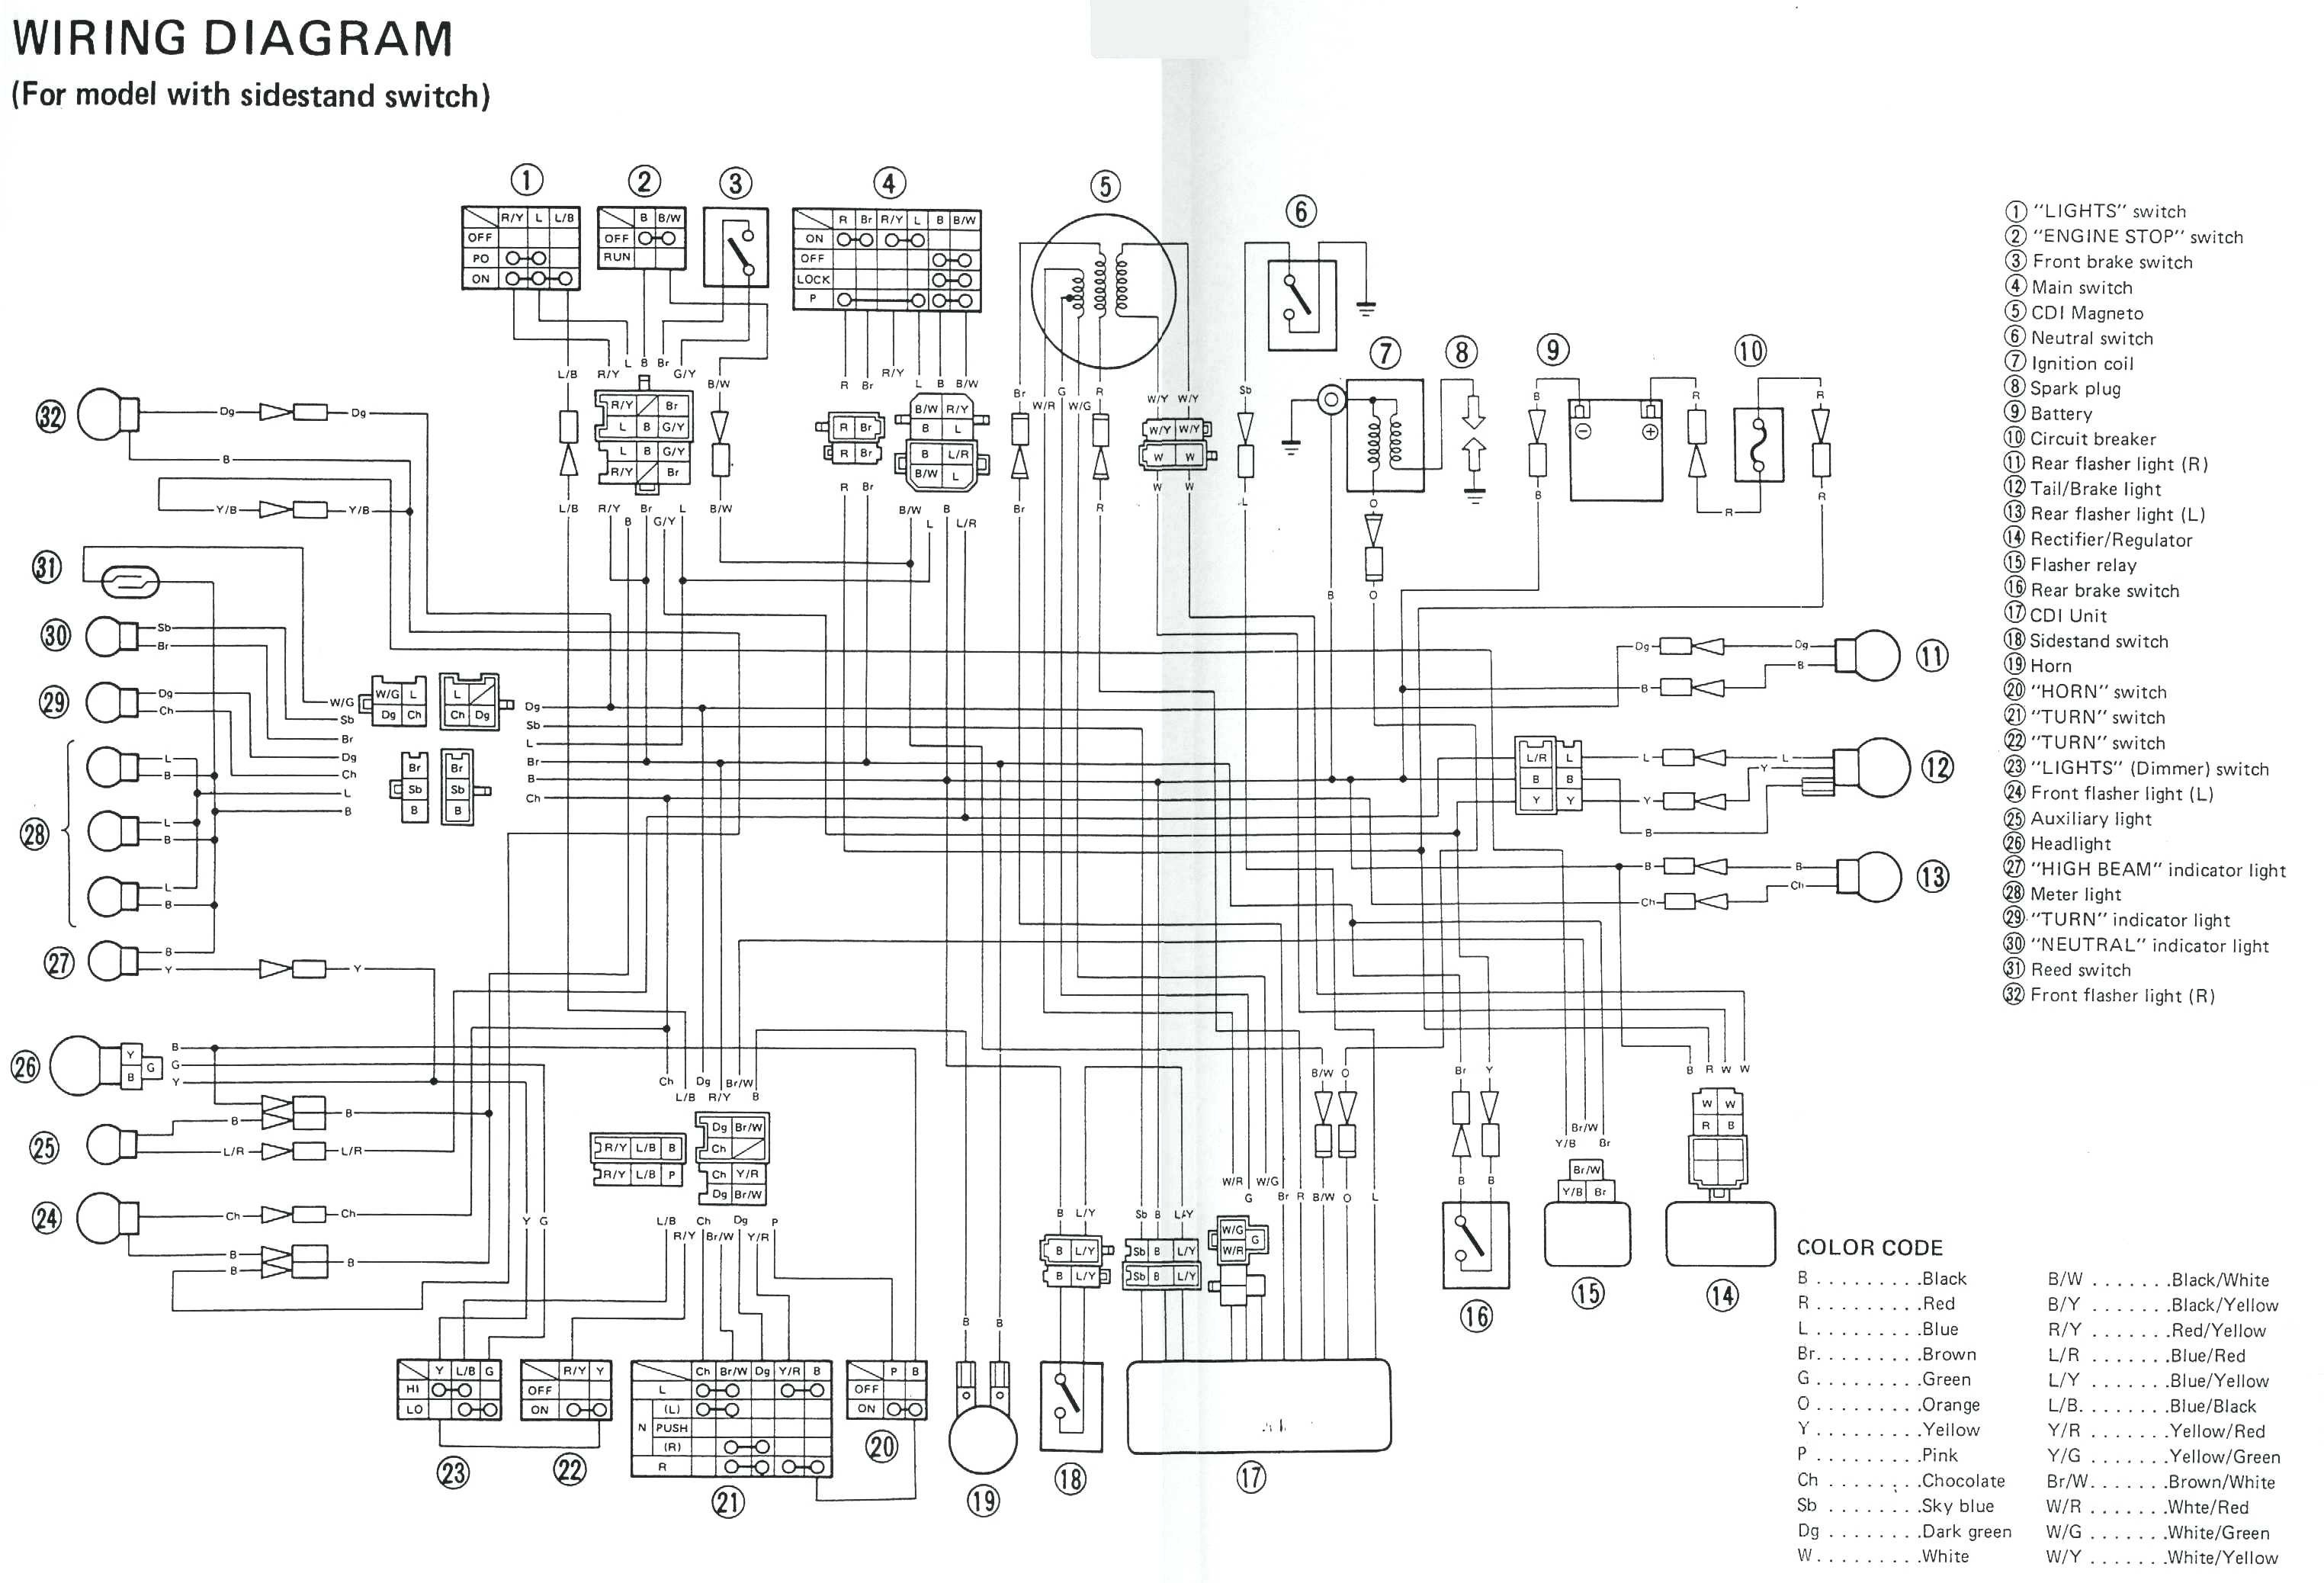 yamaha v star 650 wiring diagram tach | wiring diagram yamaha raider wiring diagram free yamaha atv wiring diagram